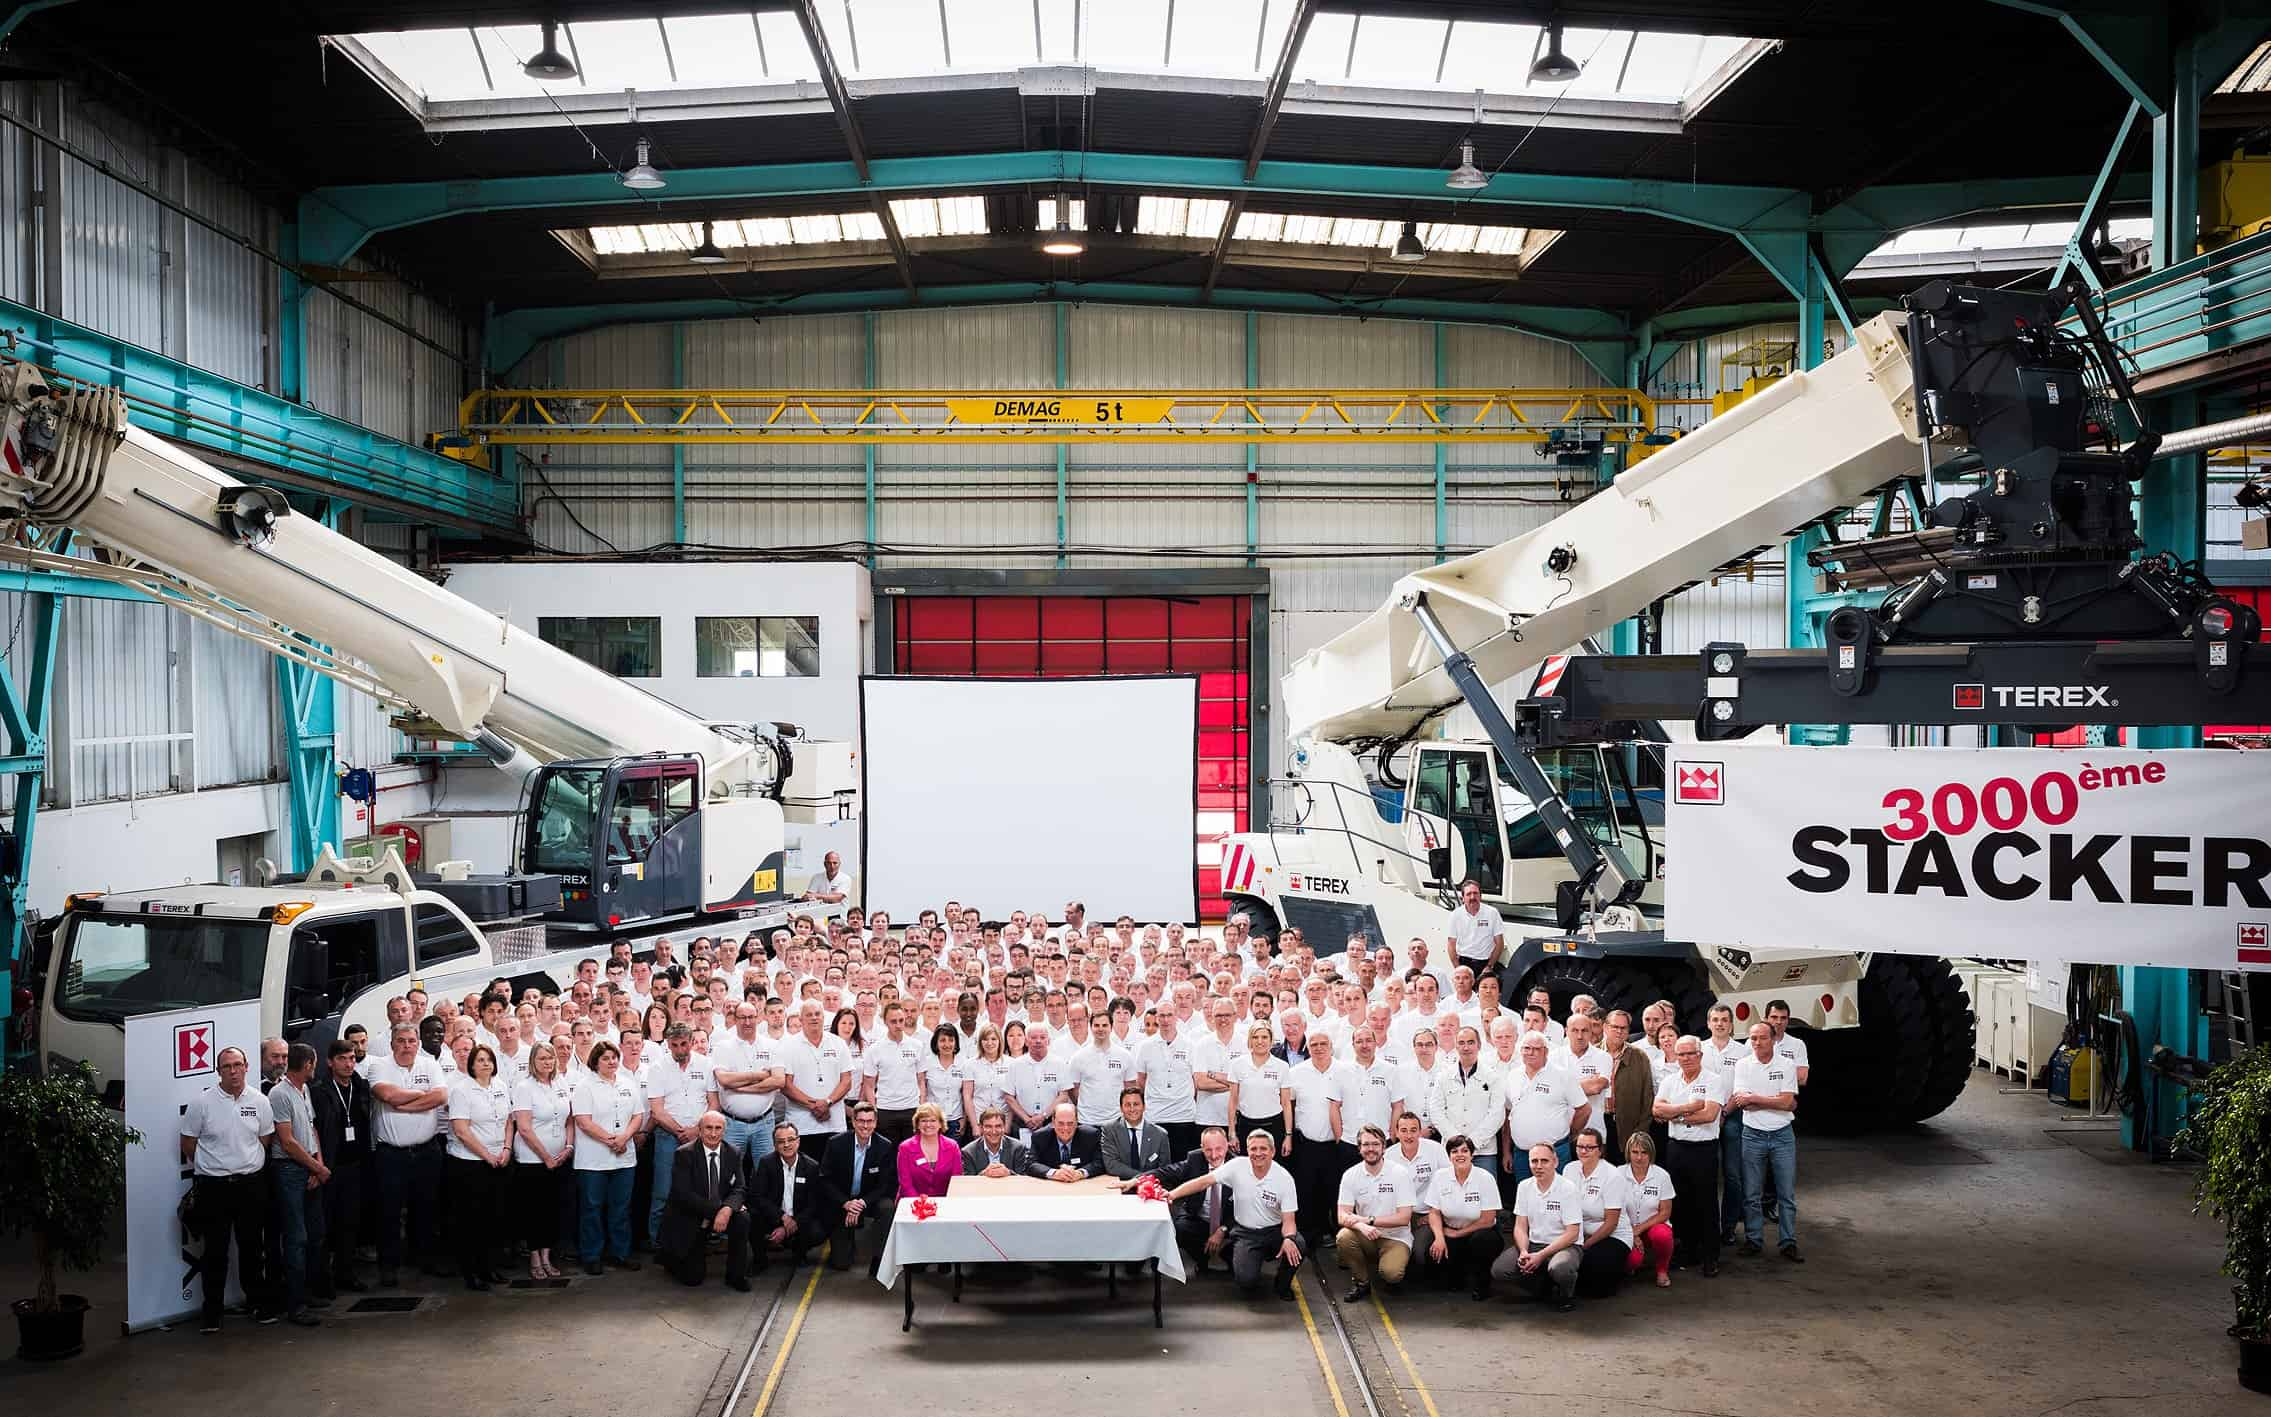 Terex marks Montceau-Les-Mines 20th anniversary with 3,000th reachstacker